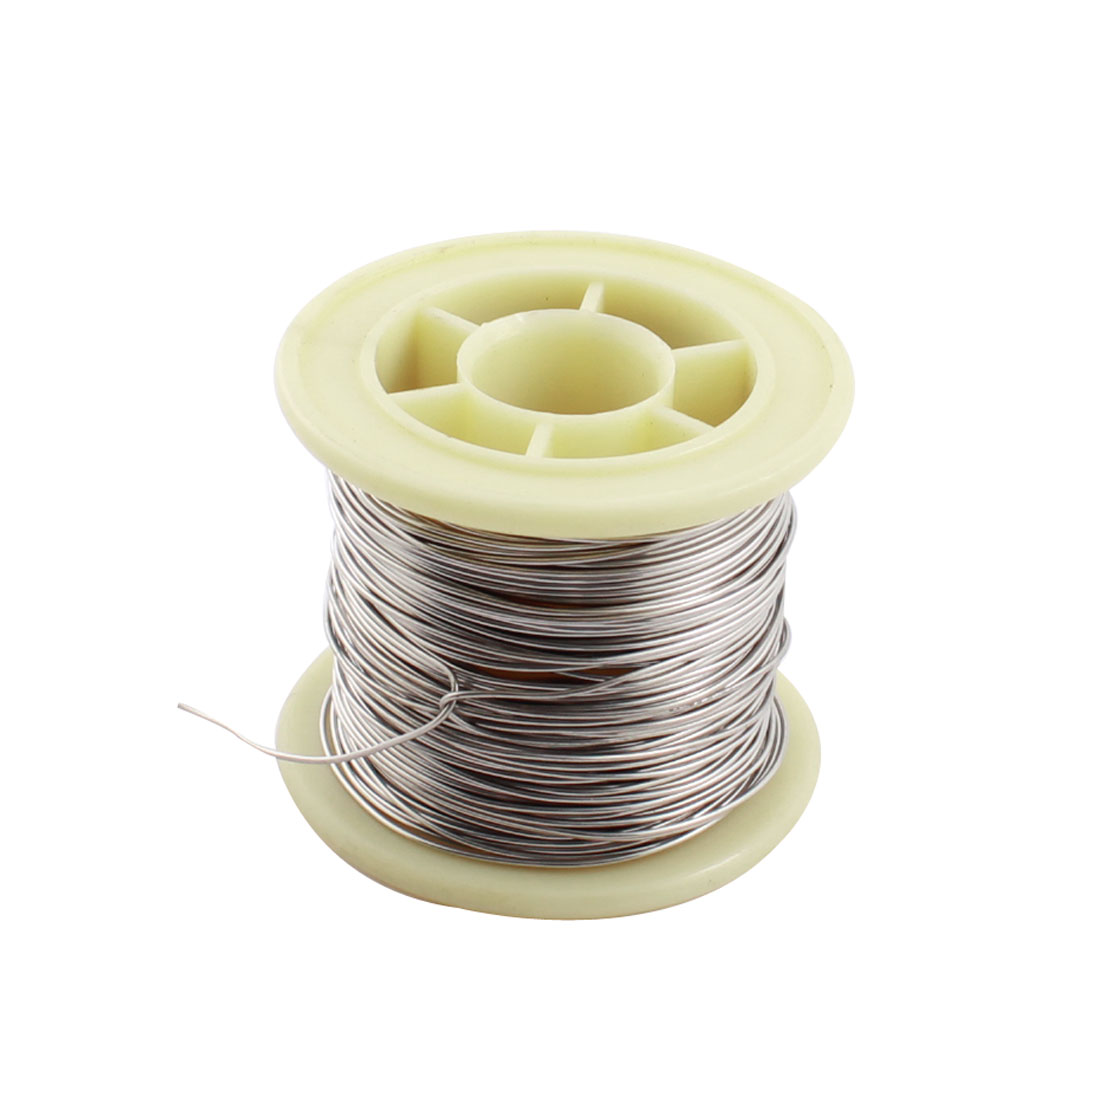 0.7mm Diameter AWG21 15meter 50ft Length Nichrome Resistance Heating Coils Heater Resistor Wire